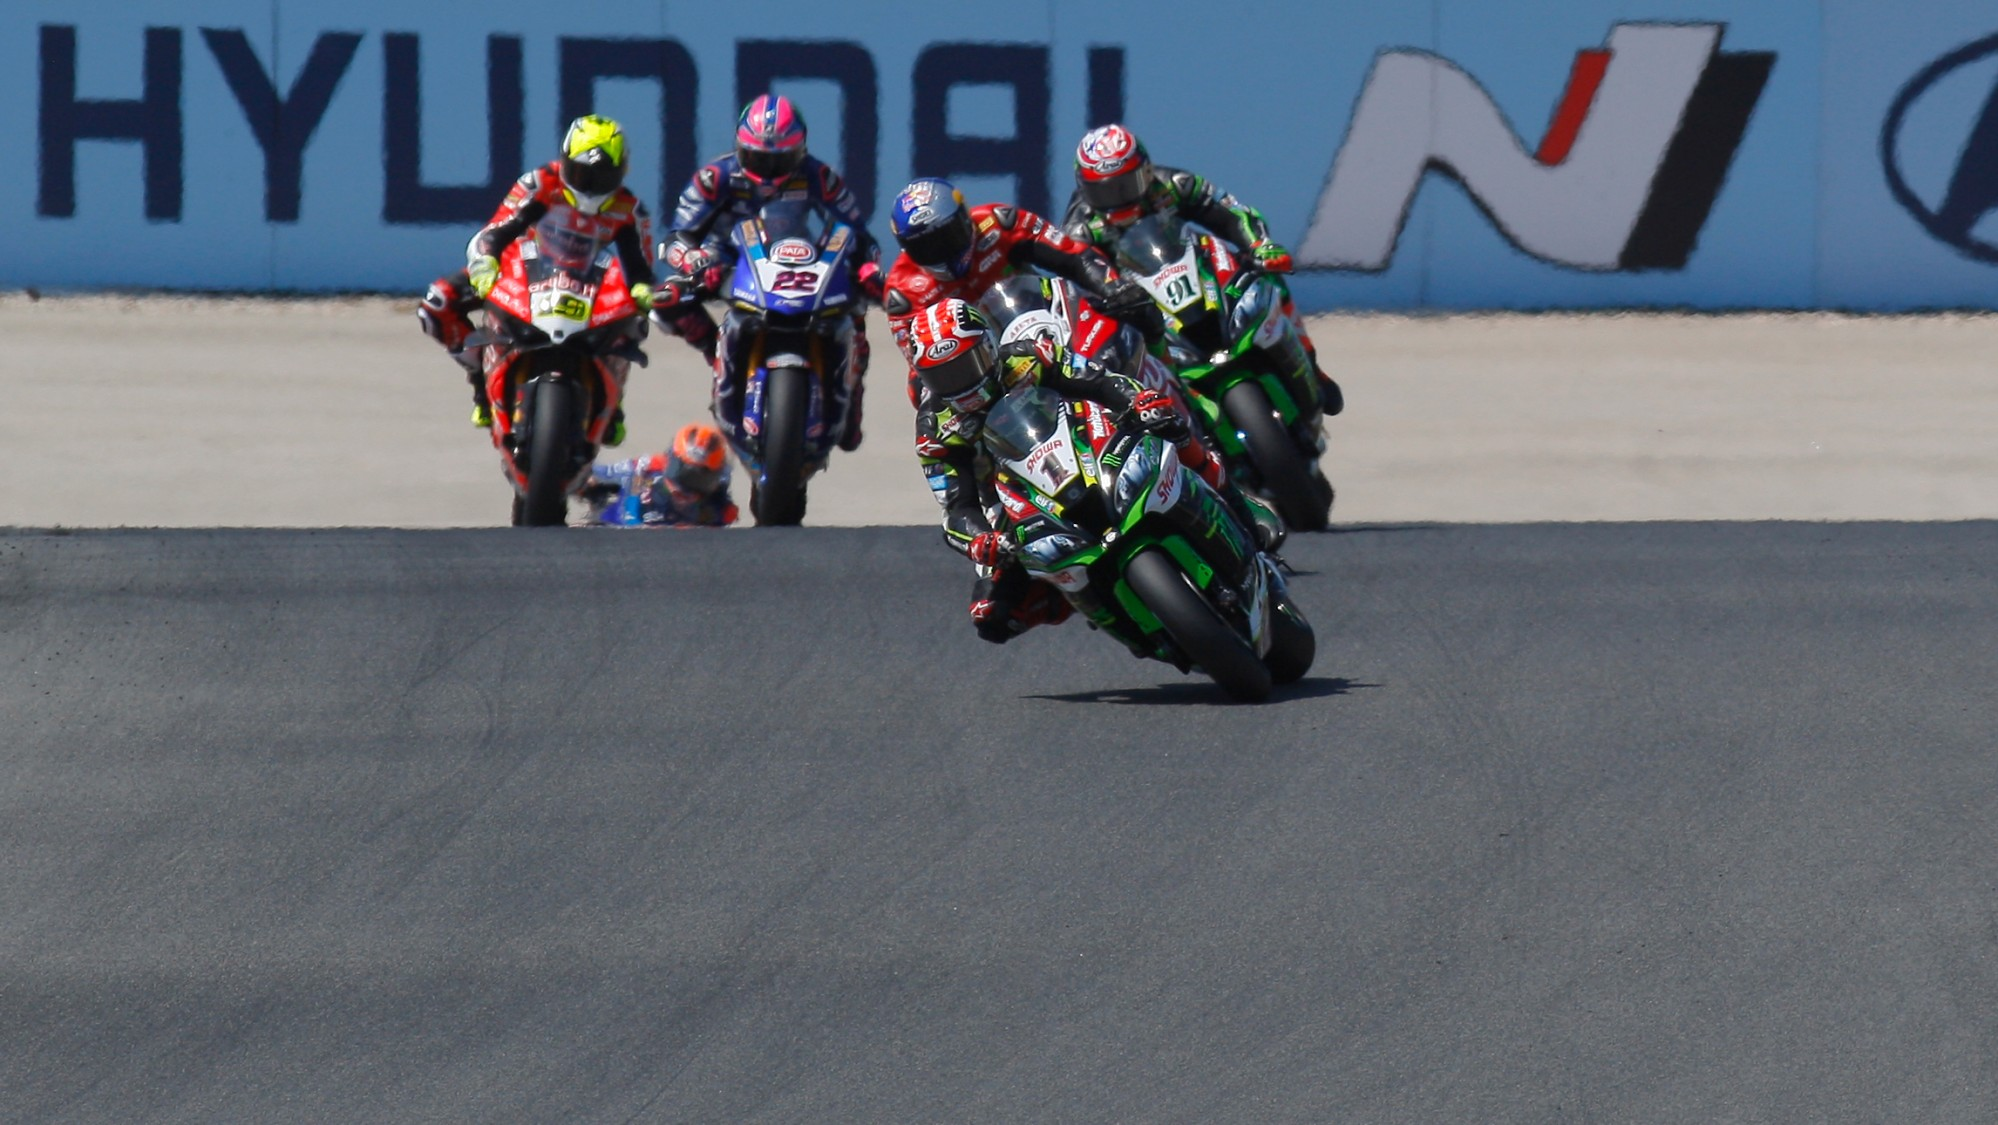 horariostelevisionwsbkmagnycours